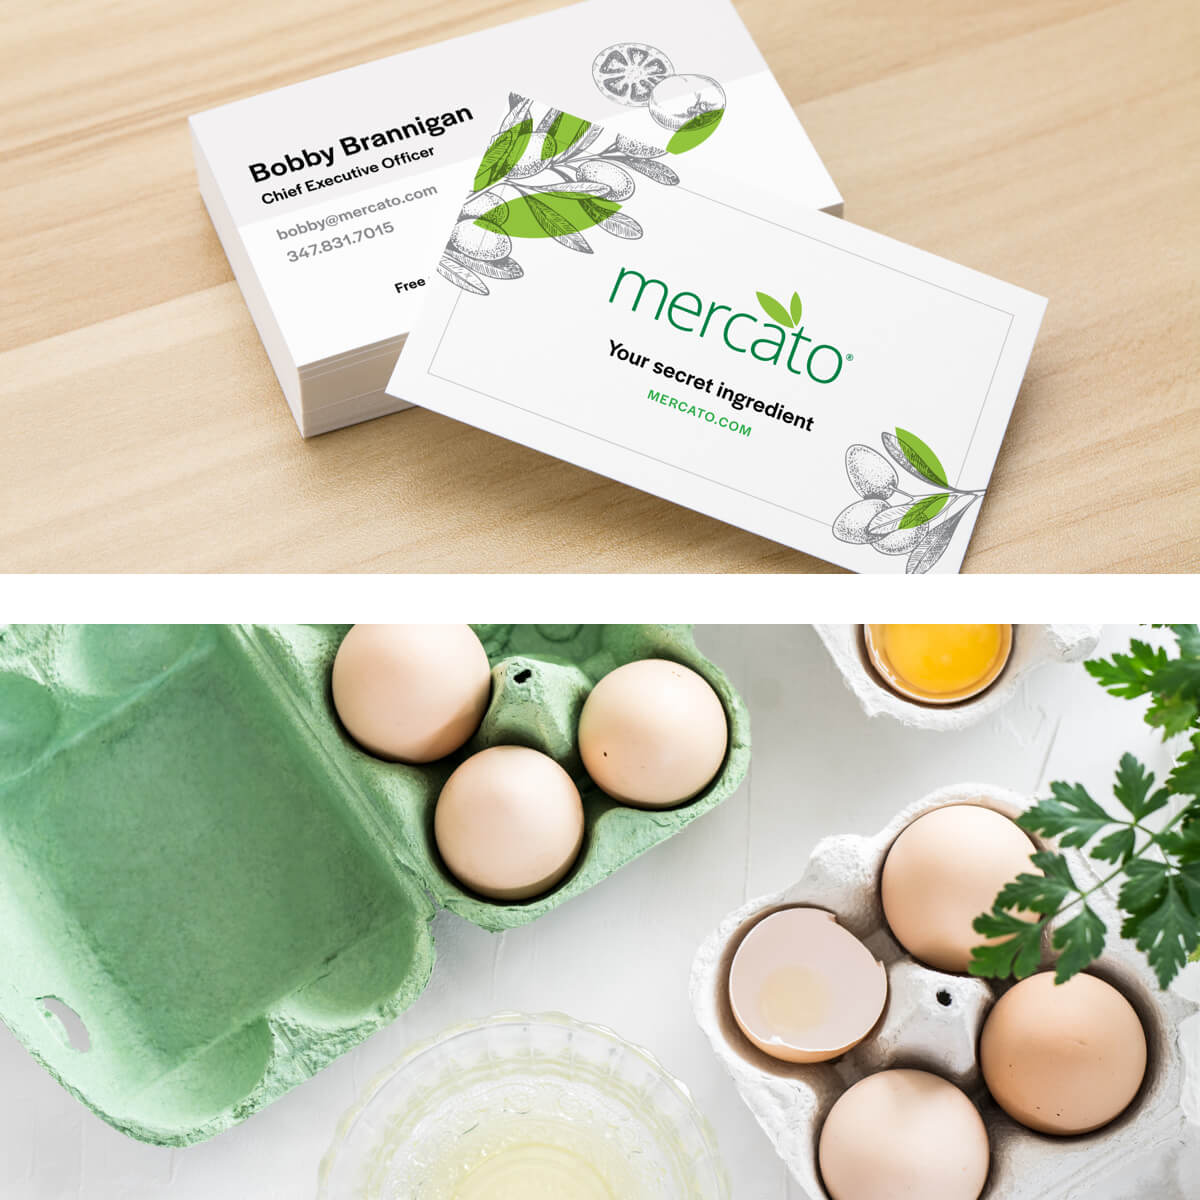 mercato business cards and groceries in a split view